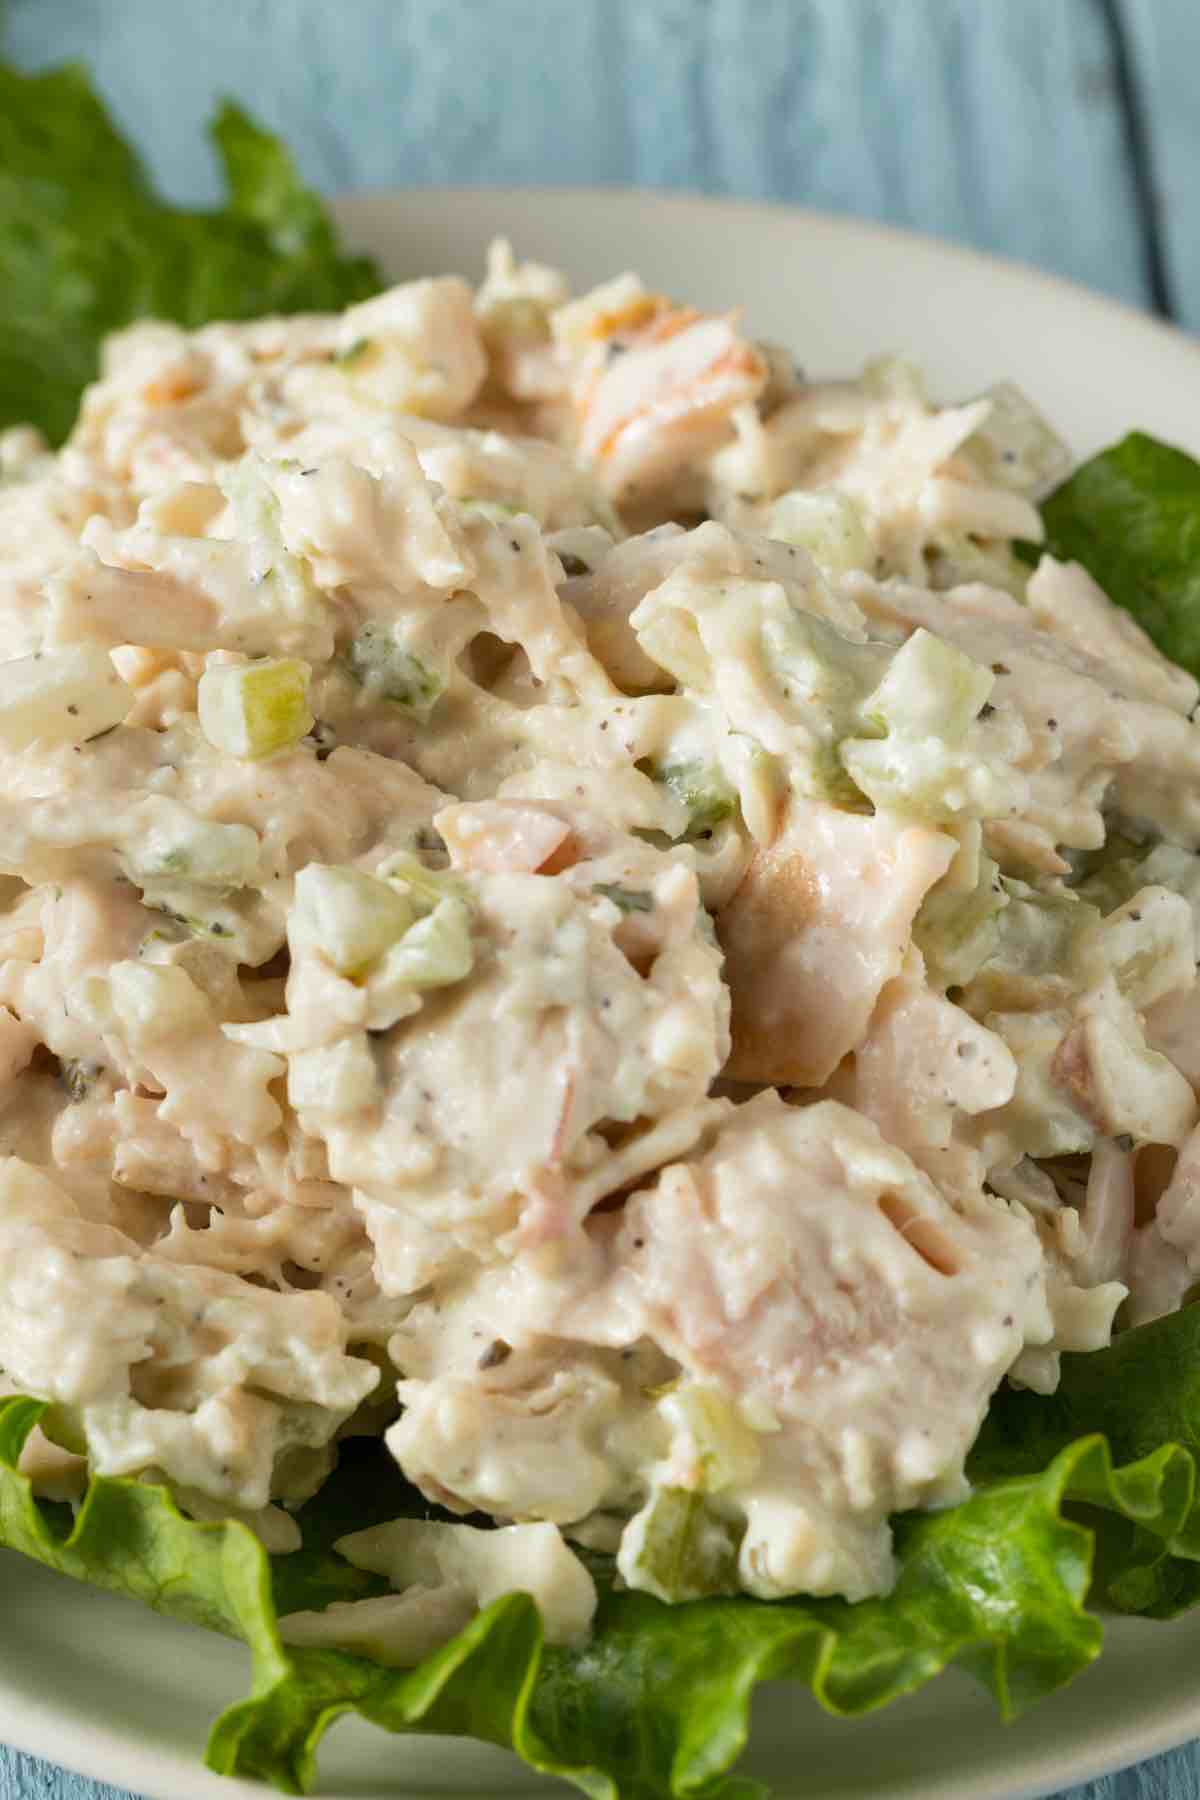 When you have a leftover chicken salad from the picnics or BBQs, you may wonder: Can You Freeze Chicken Salad? This summer salad is a great way to feed many people with few ingredients. But if your large batch doesn't get eaten, can it be frozen?